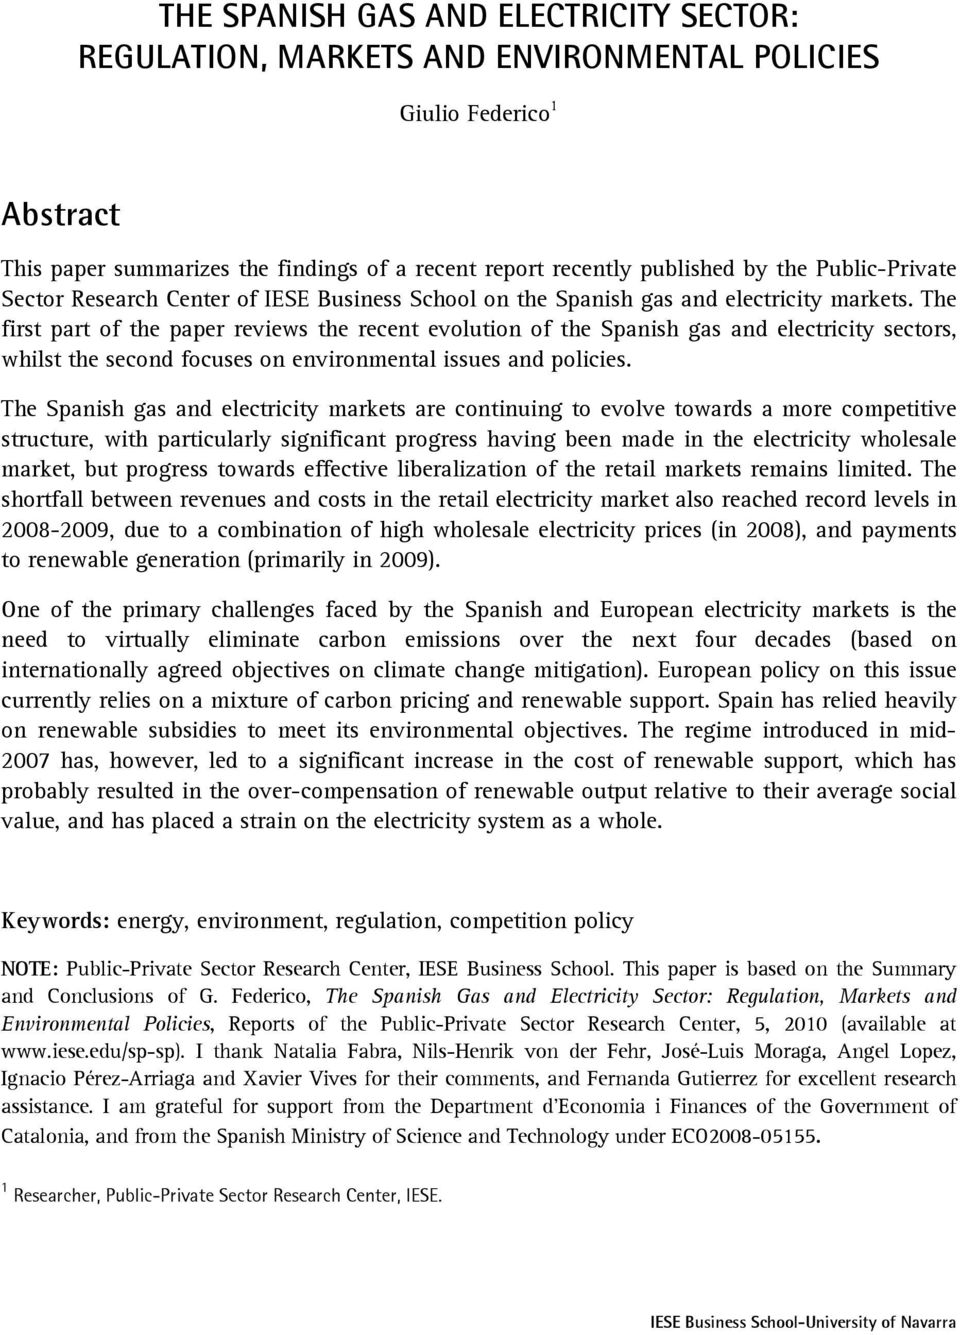 The first part of the paper reviews the recent evolution of the Spanish gas and electricity sectors, whilst the second focuses on environmental issues and policies.